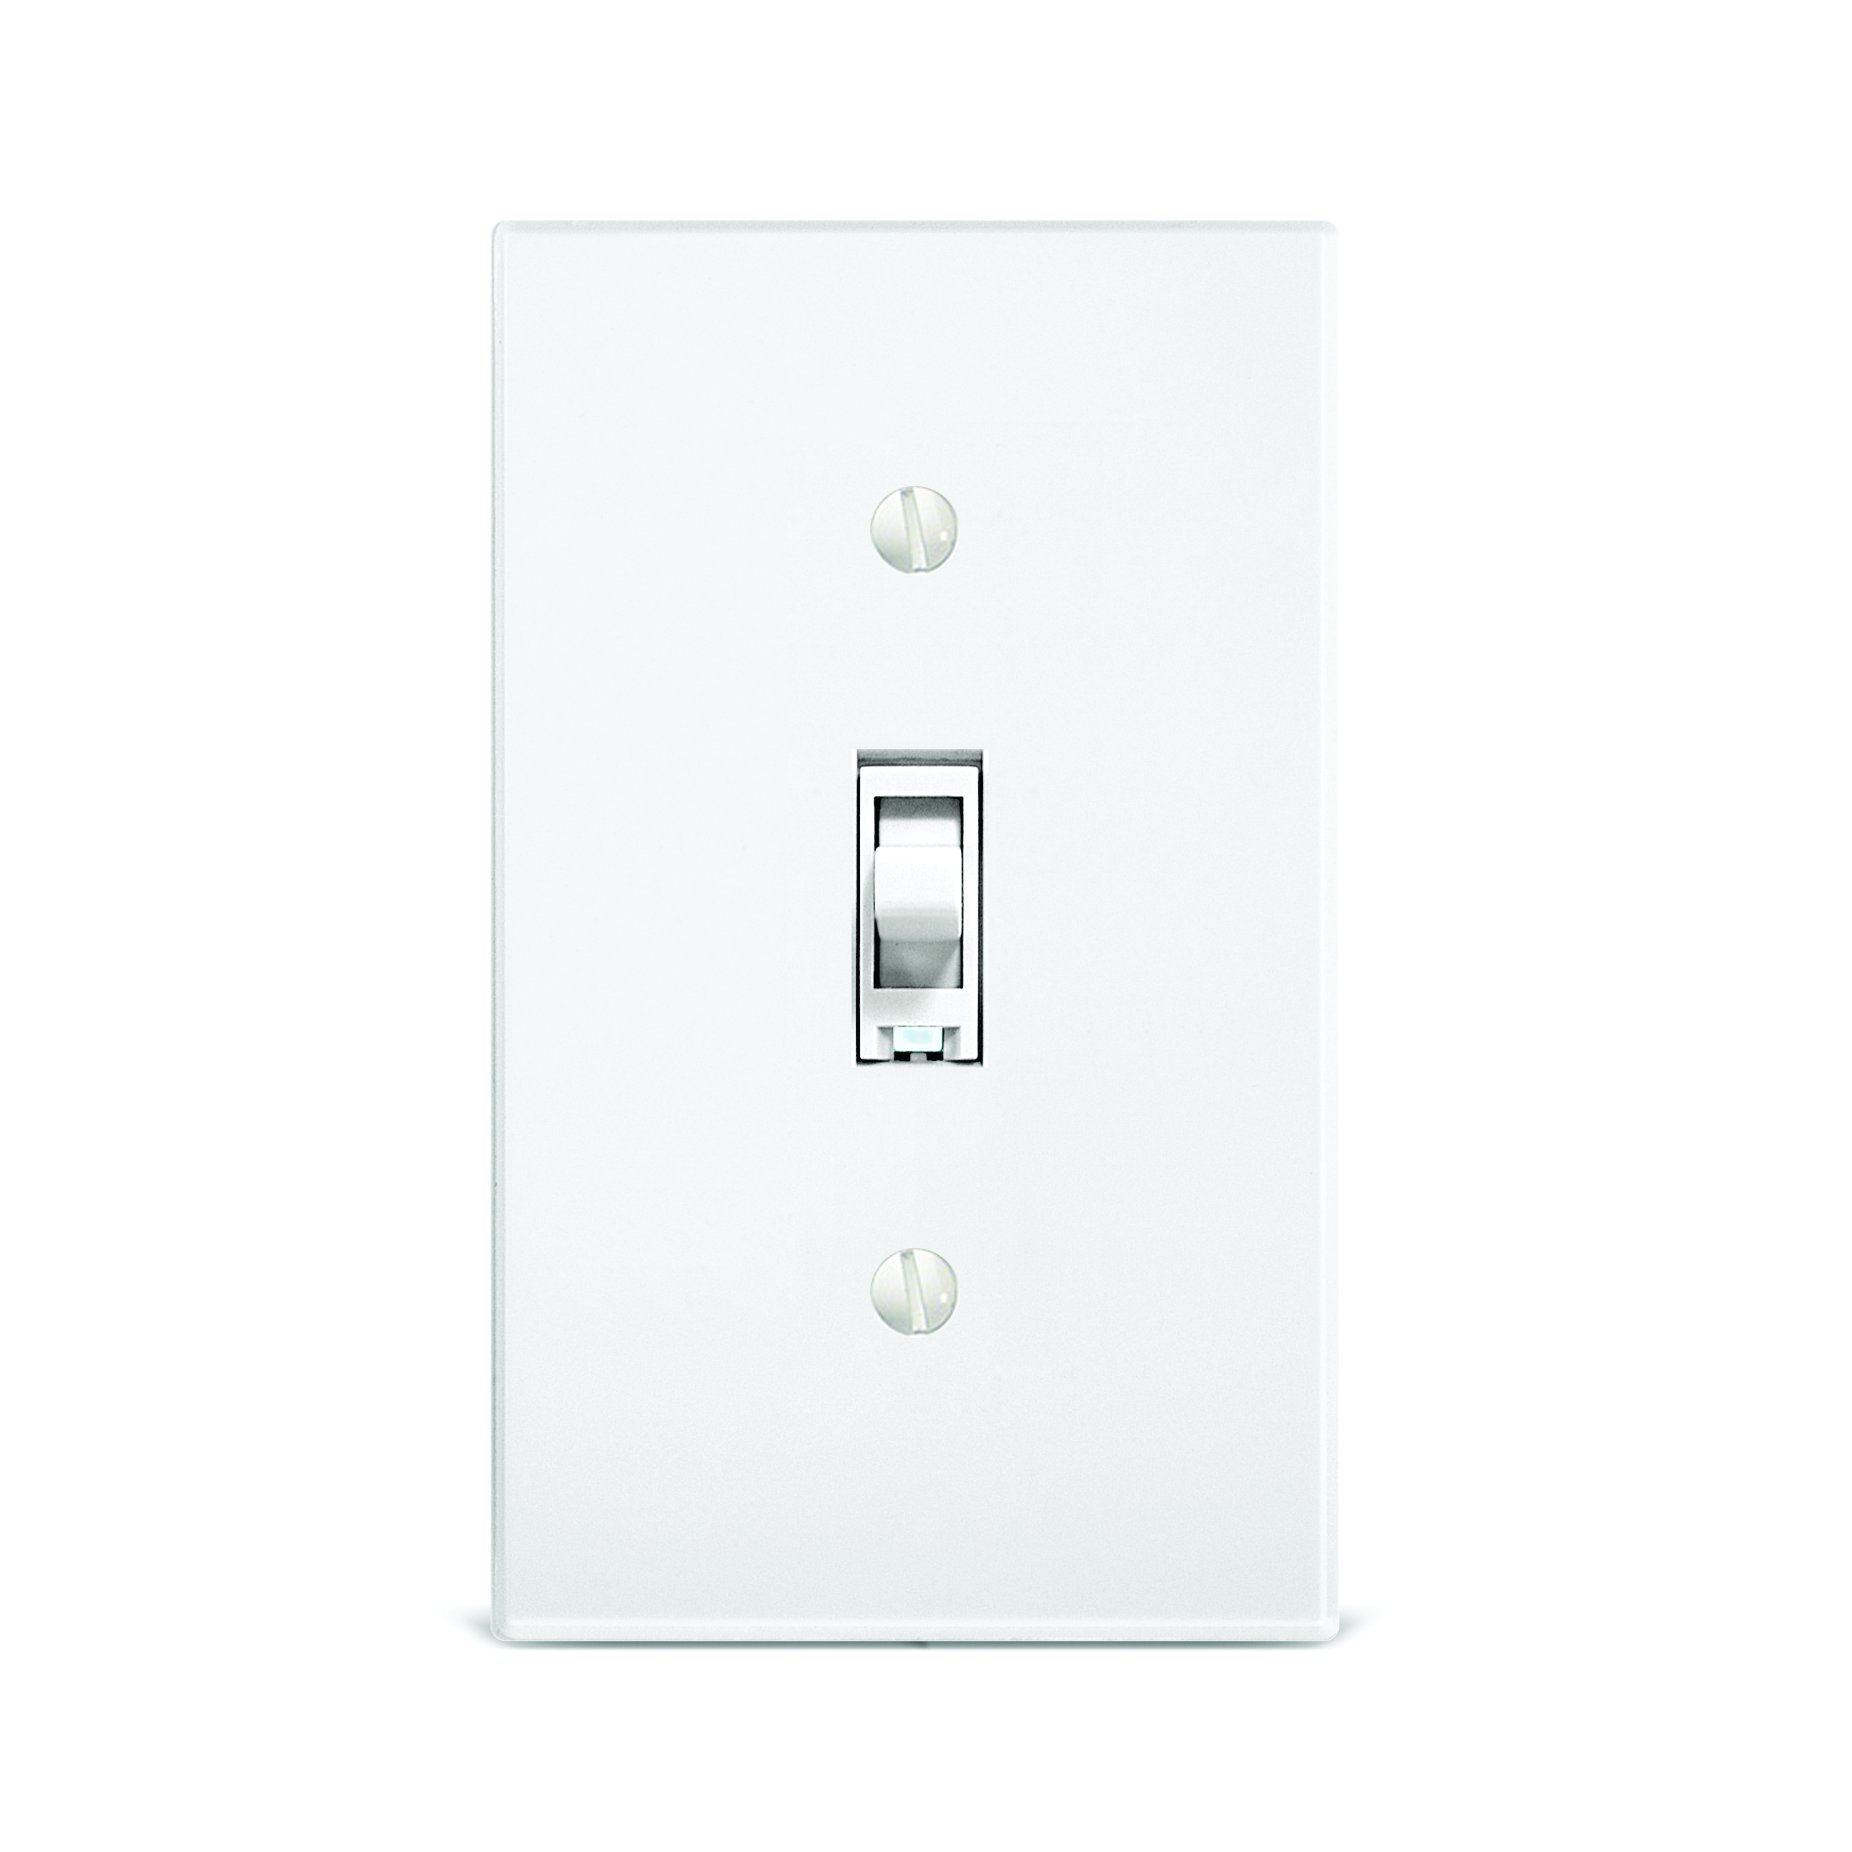 insteon 2466sw togglelinc relay insteon remote control on